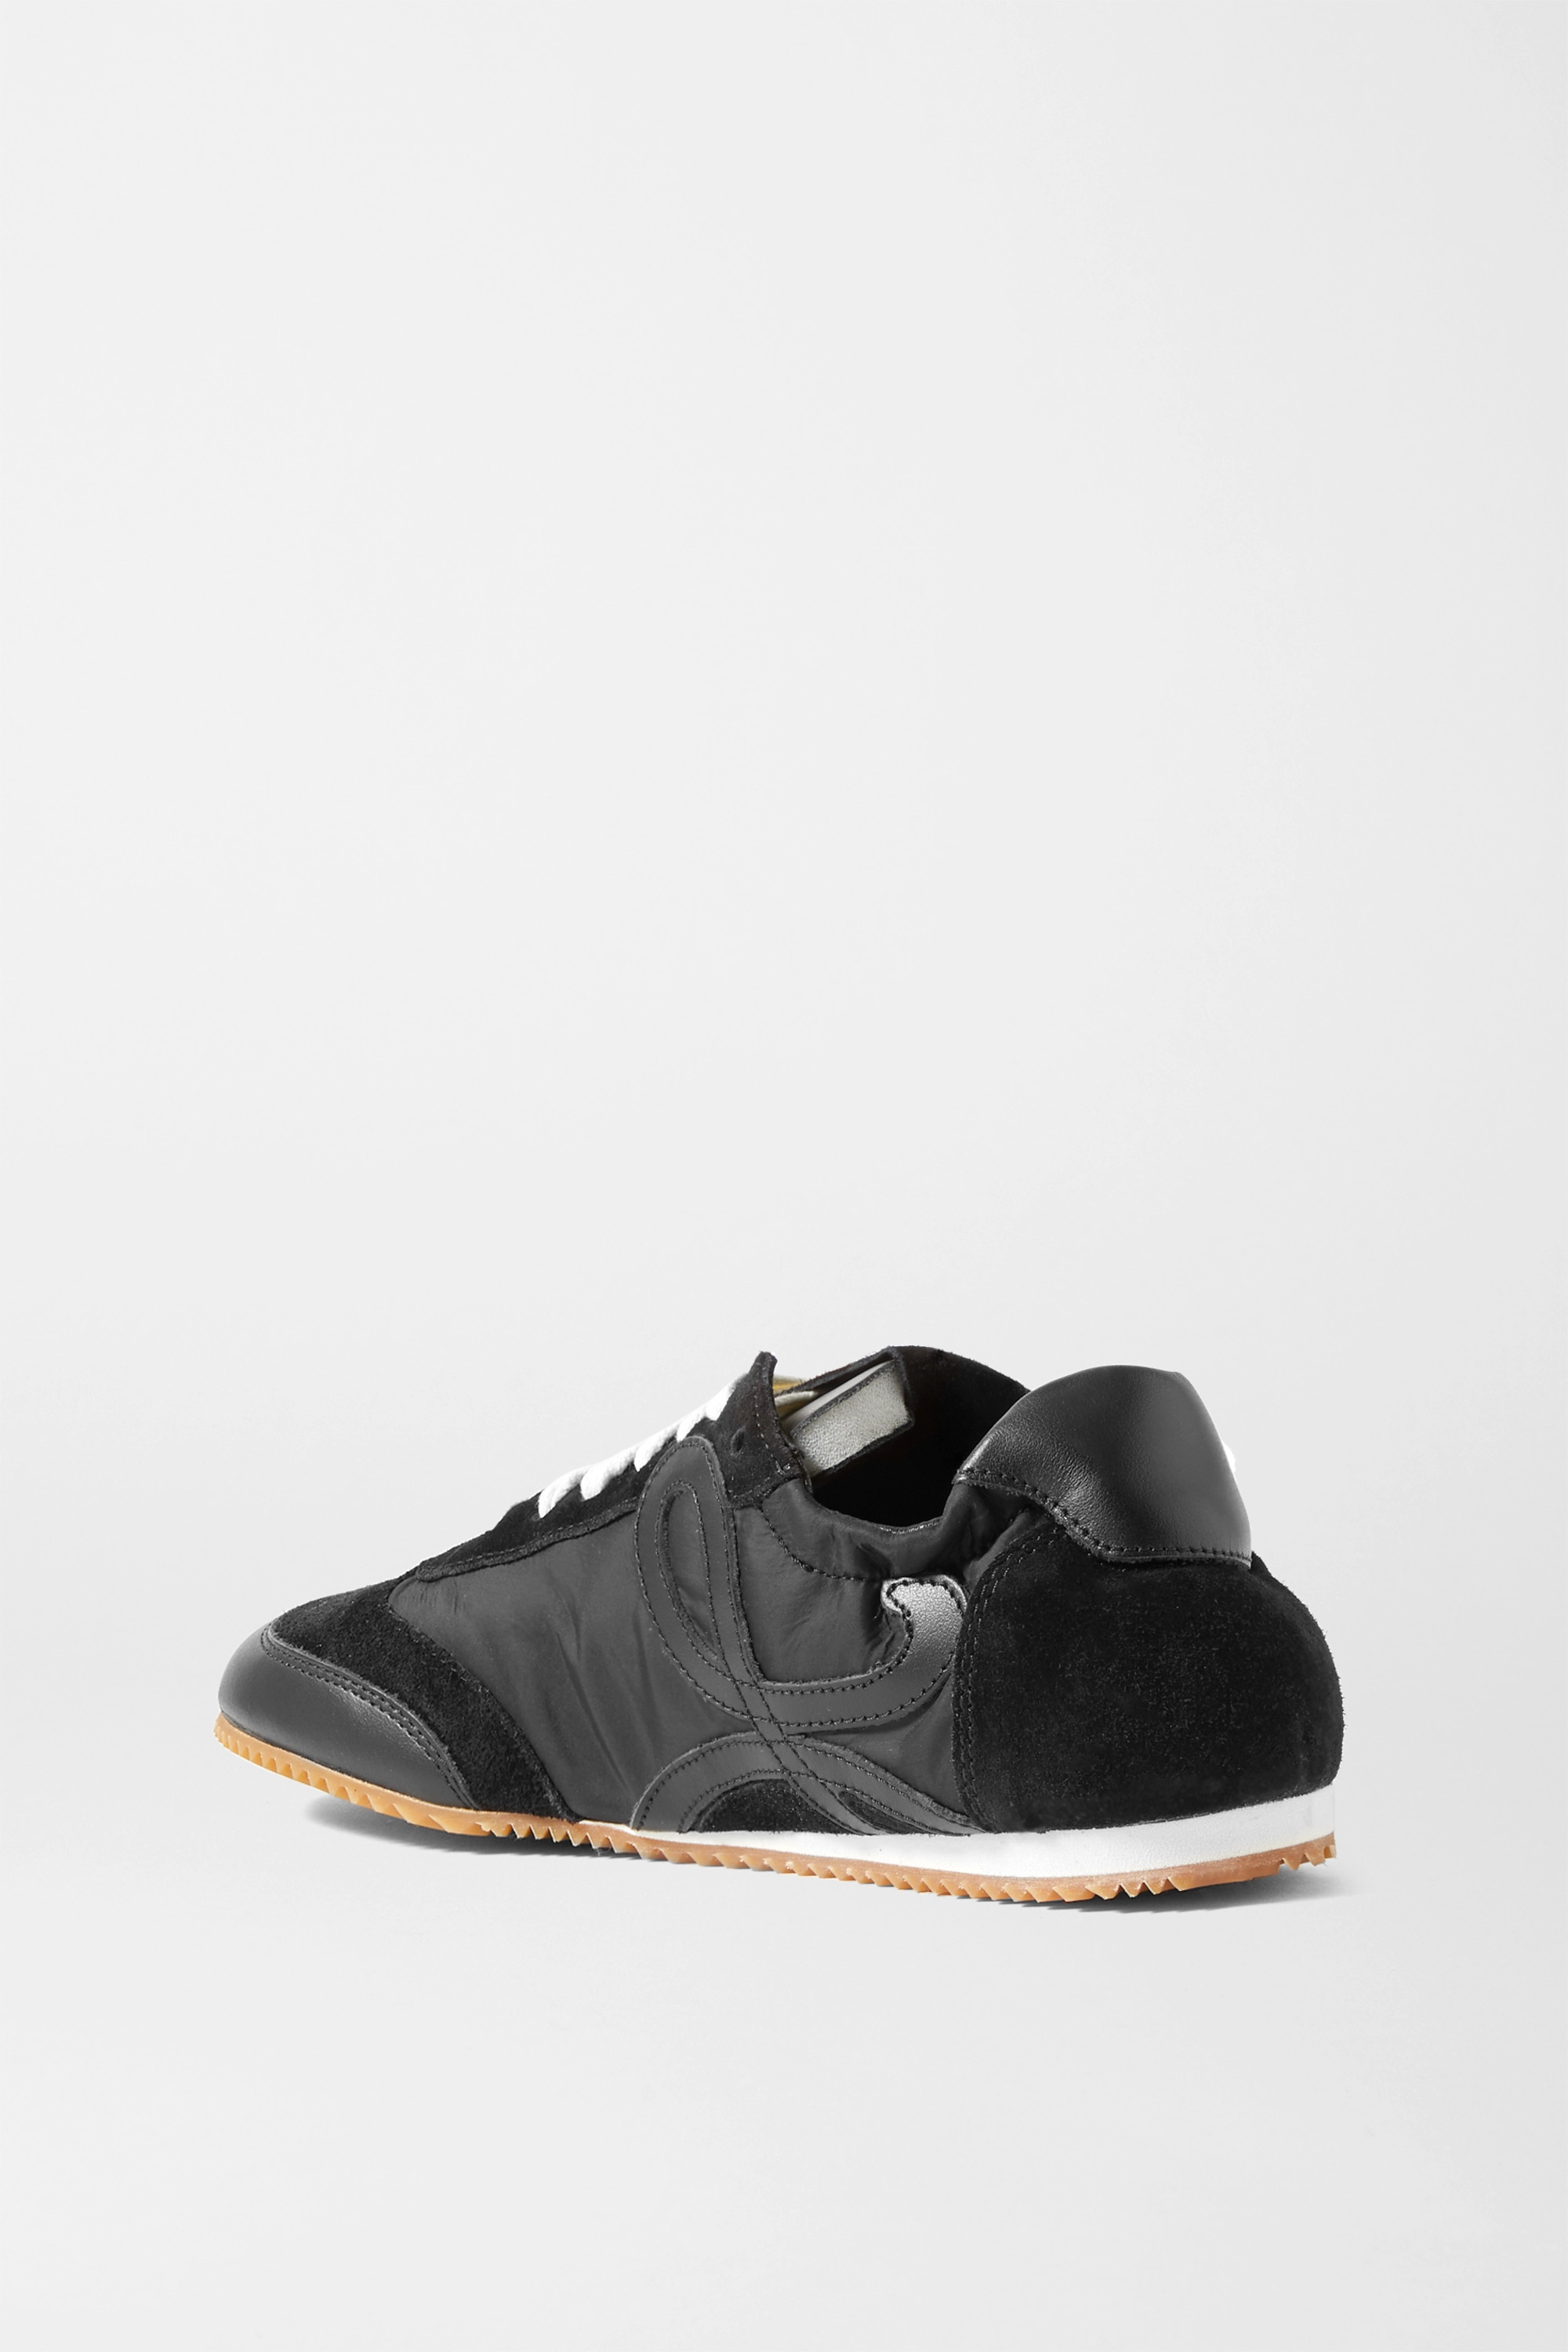 Loewe Ballet Runner shell, suede and leather sneakers